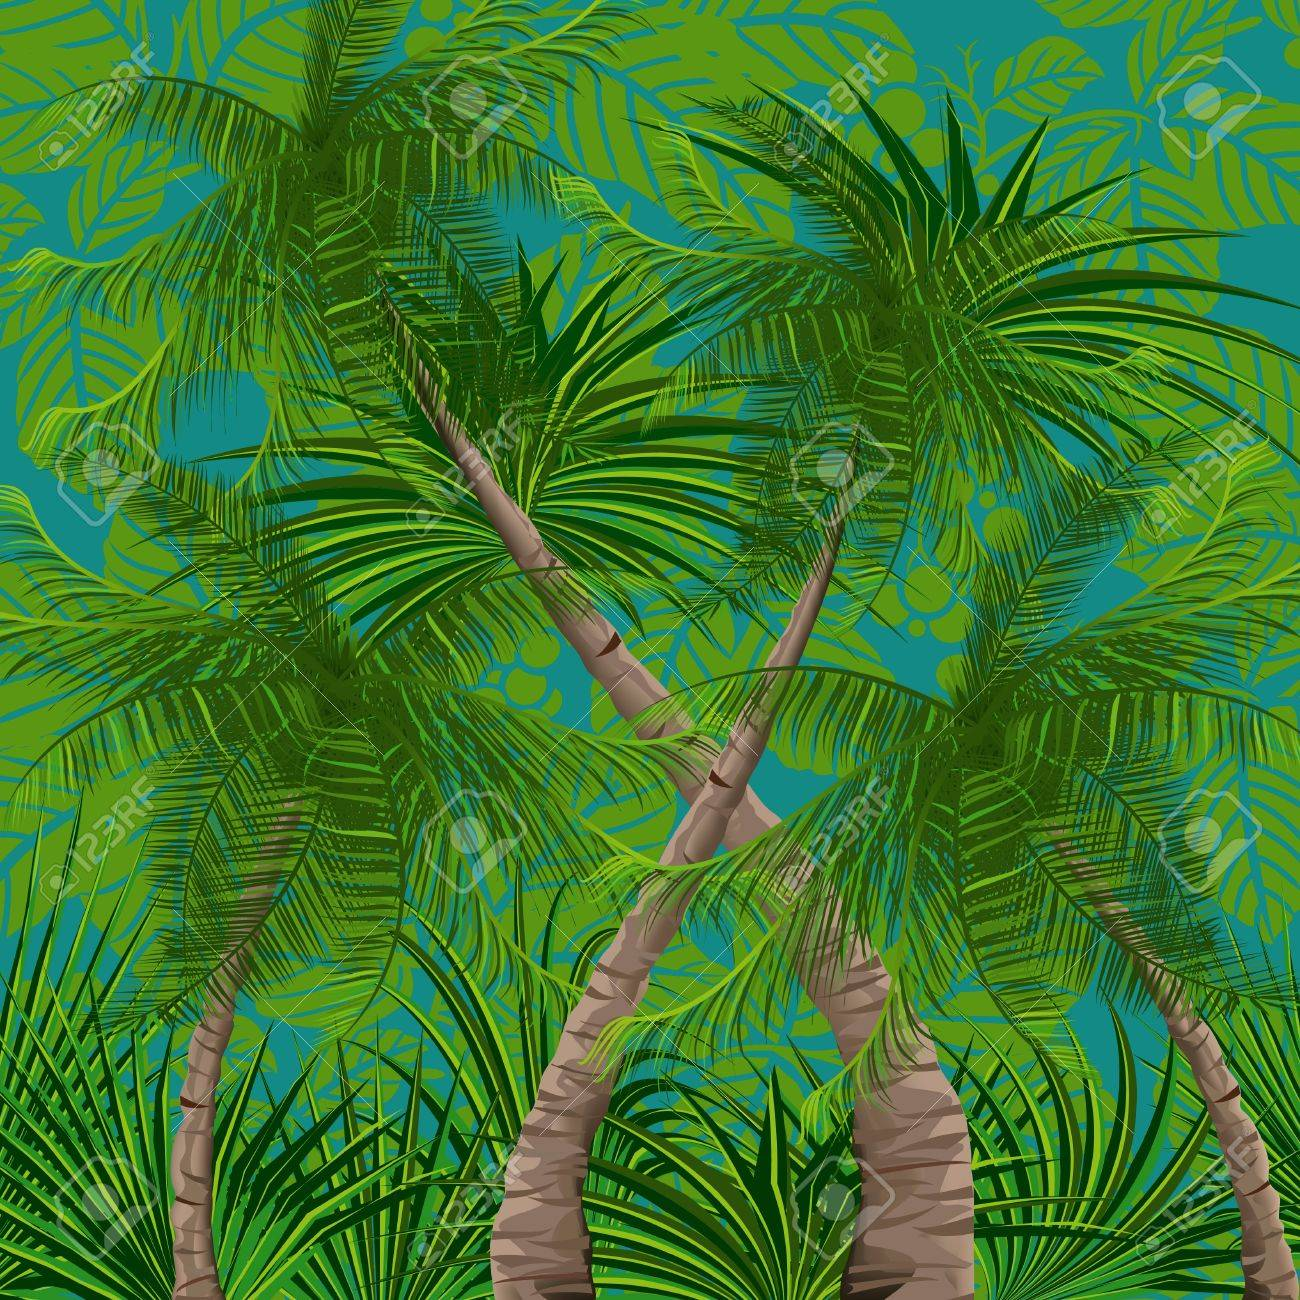 Background with tropical plants and trees - 9483294